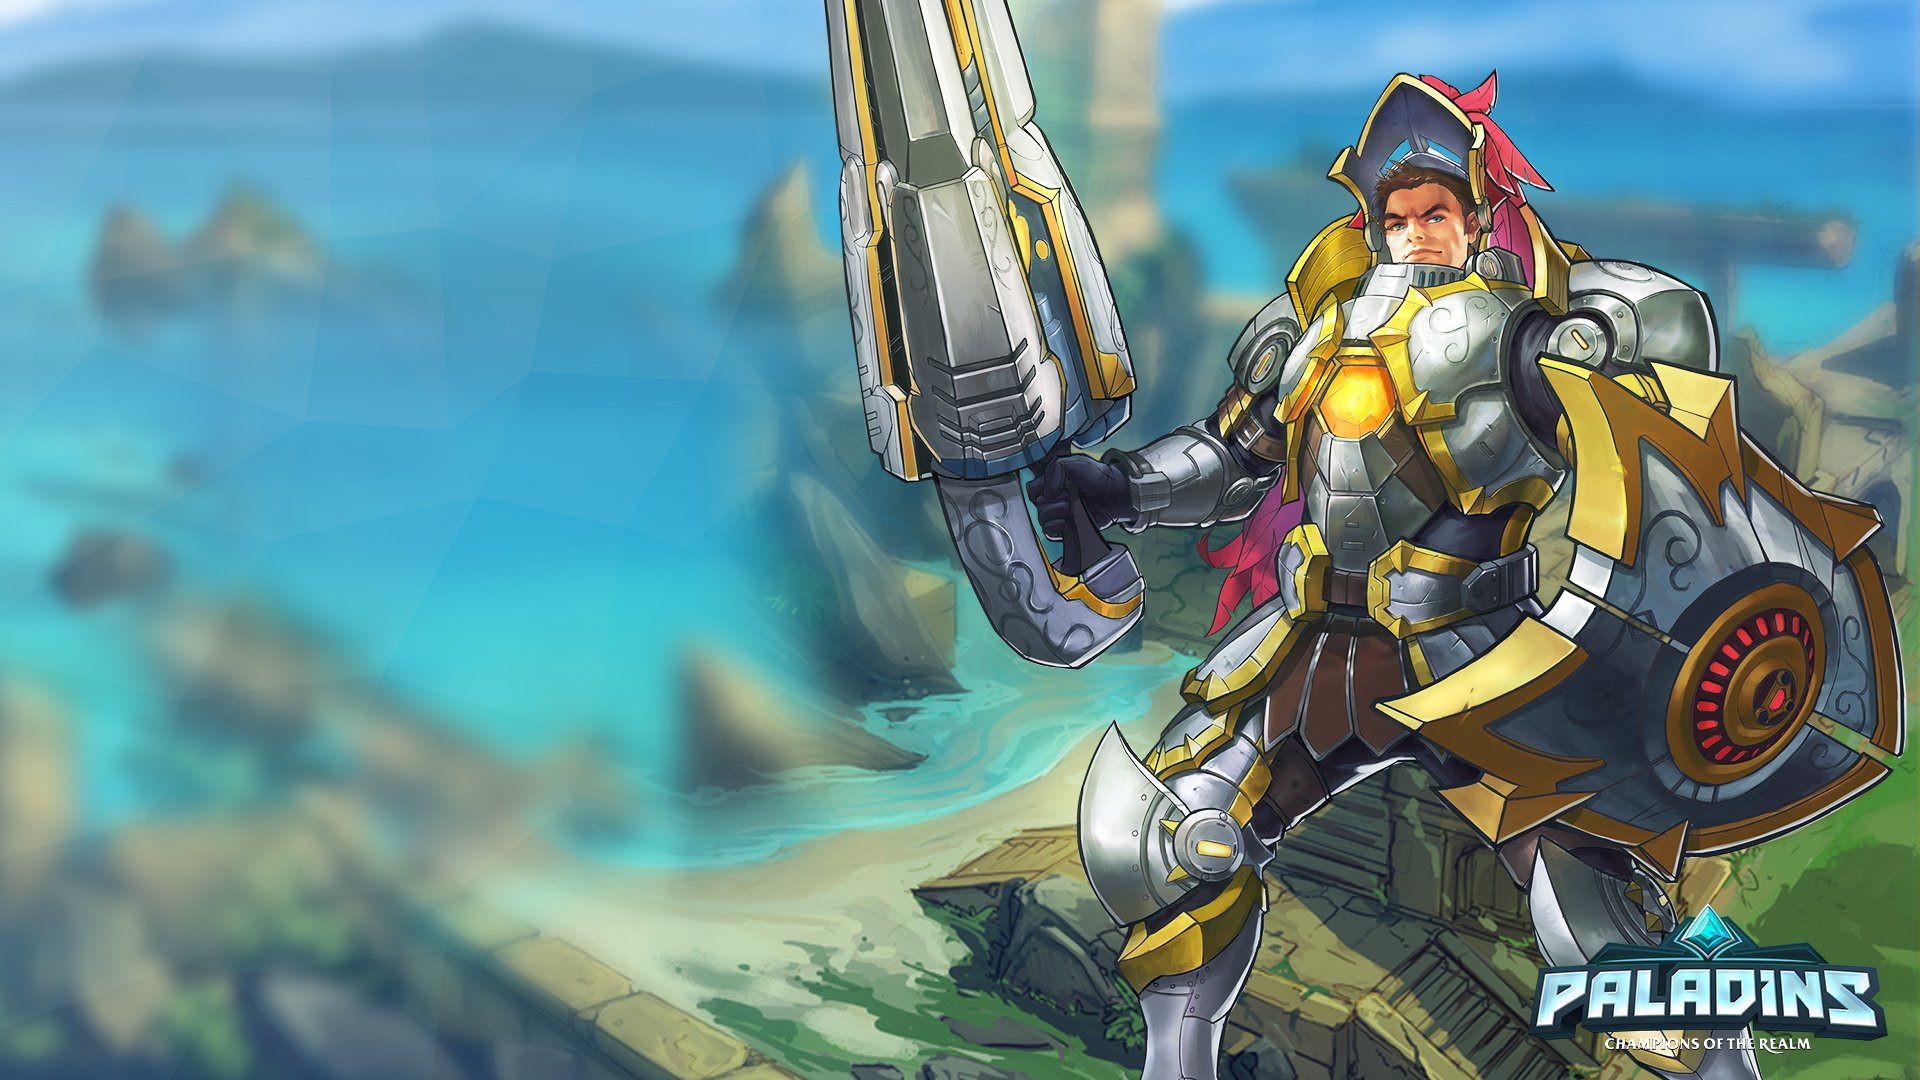 Video Game - Paladins  Paladins (Video Game) Fernando (Paladins) Wallpaper